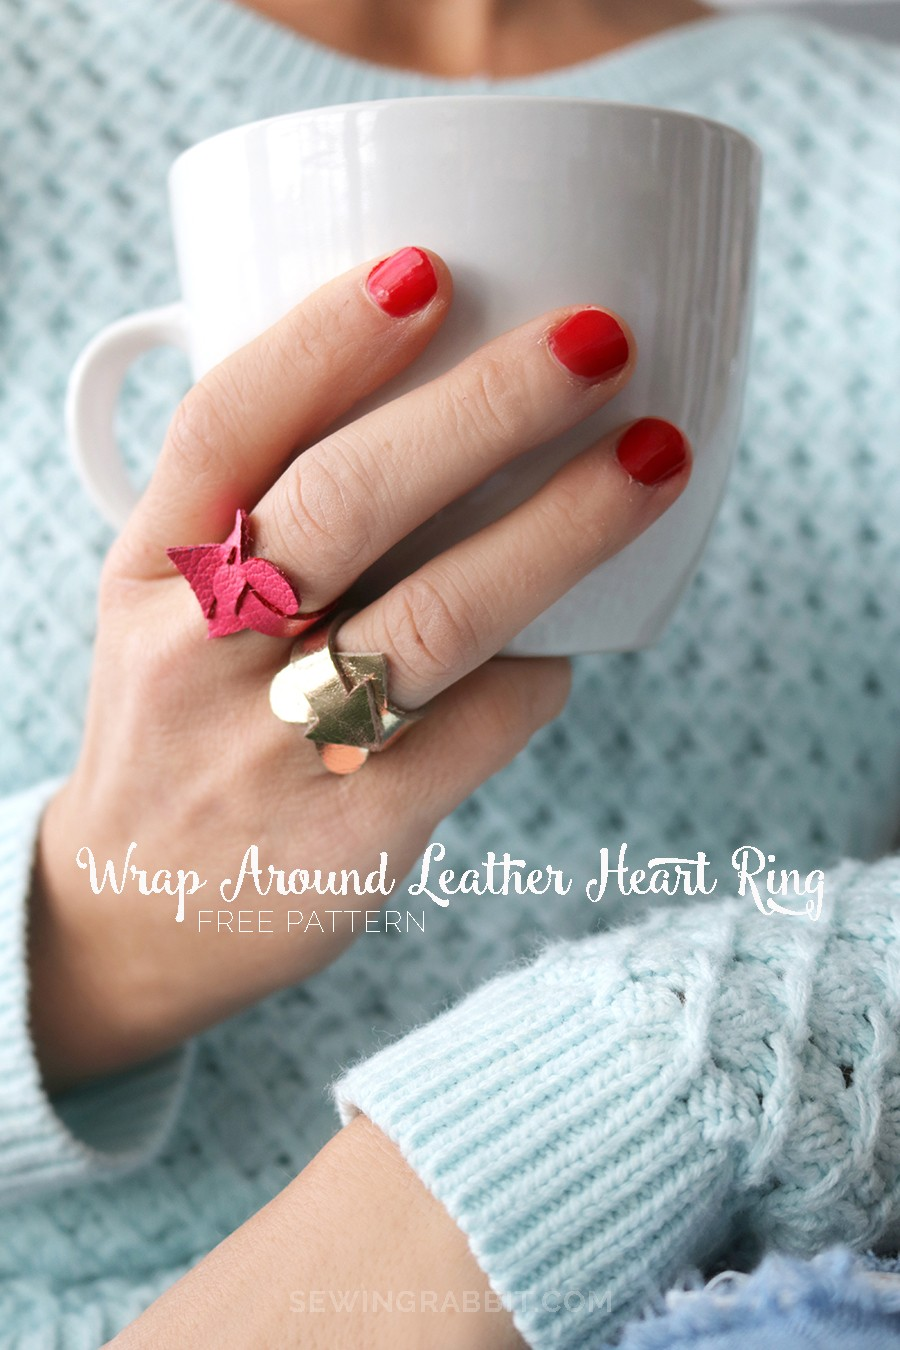 what a fun idea for Valentine's Day! Make an easy leather heart ring with this free jewelry pattern